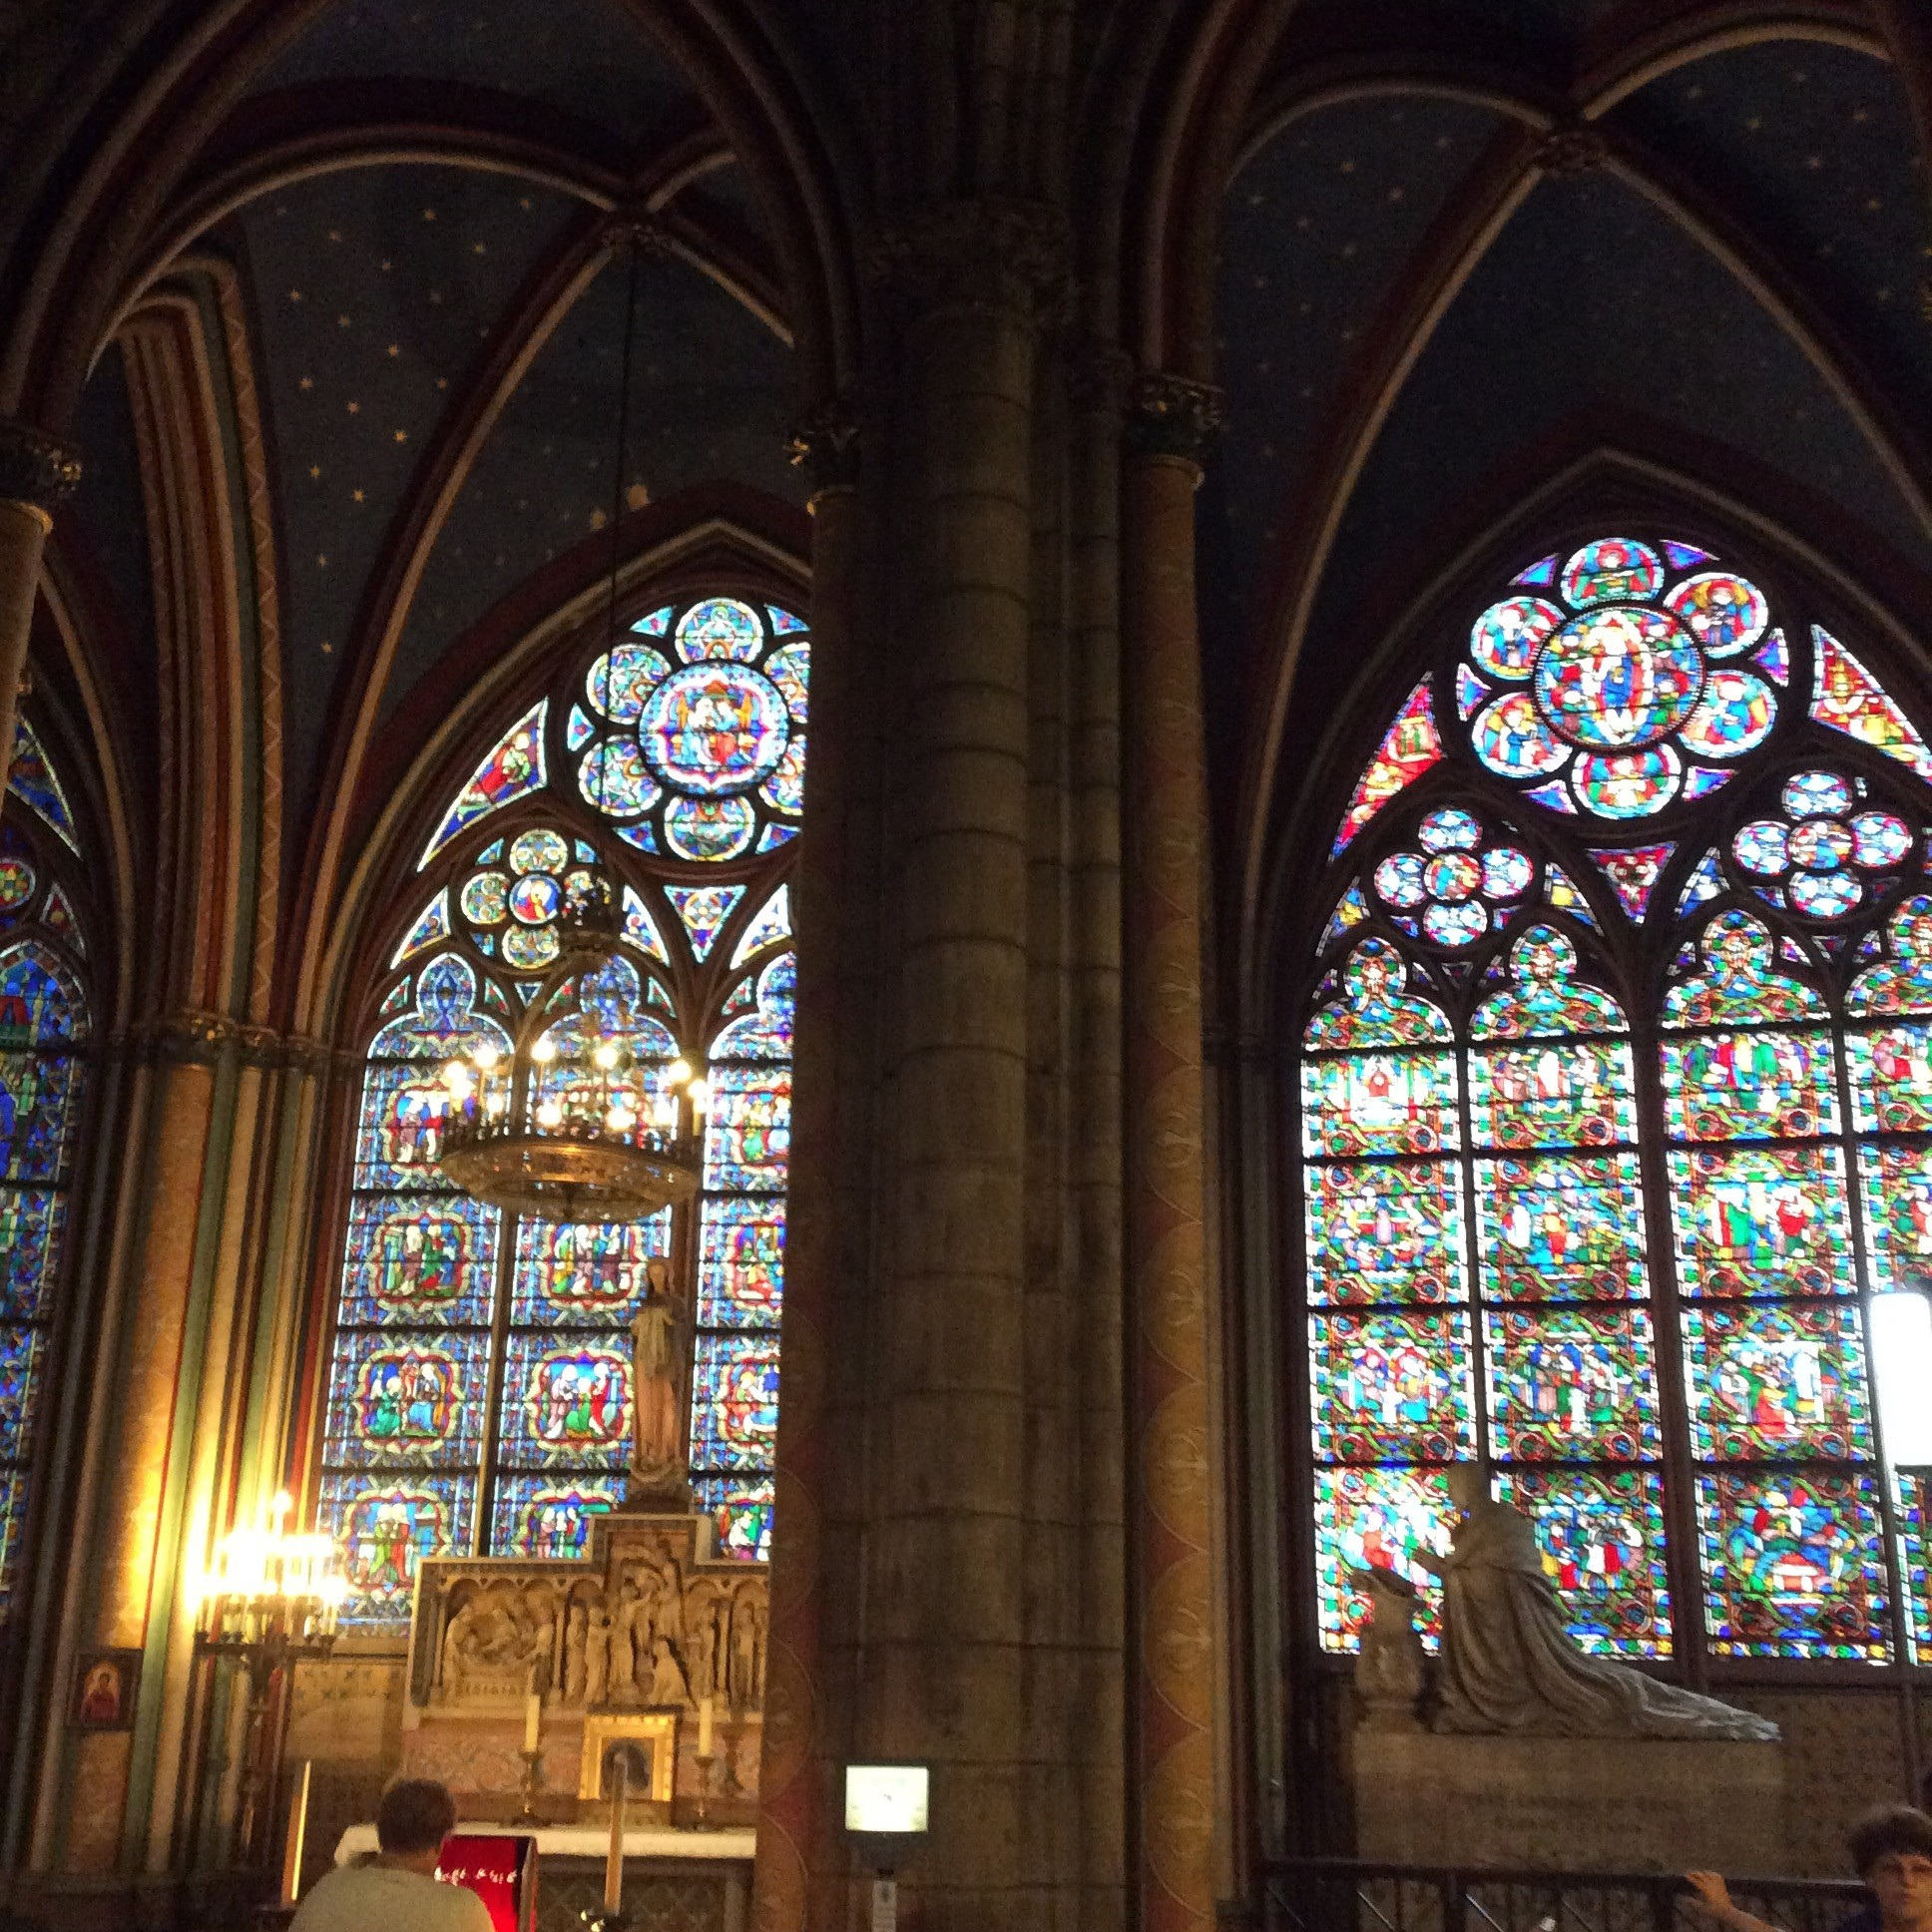 Notre Dame's stained glass windows are the most beautiful I've ever seen.